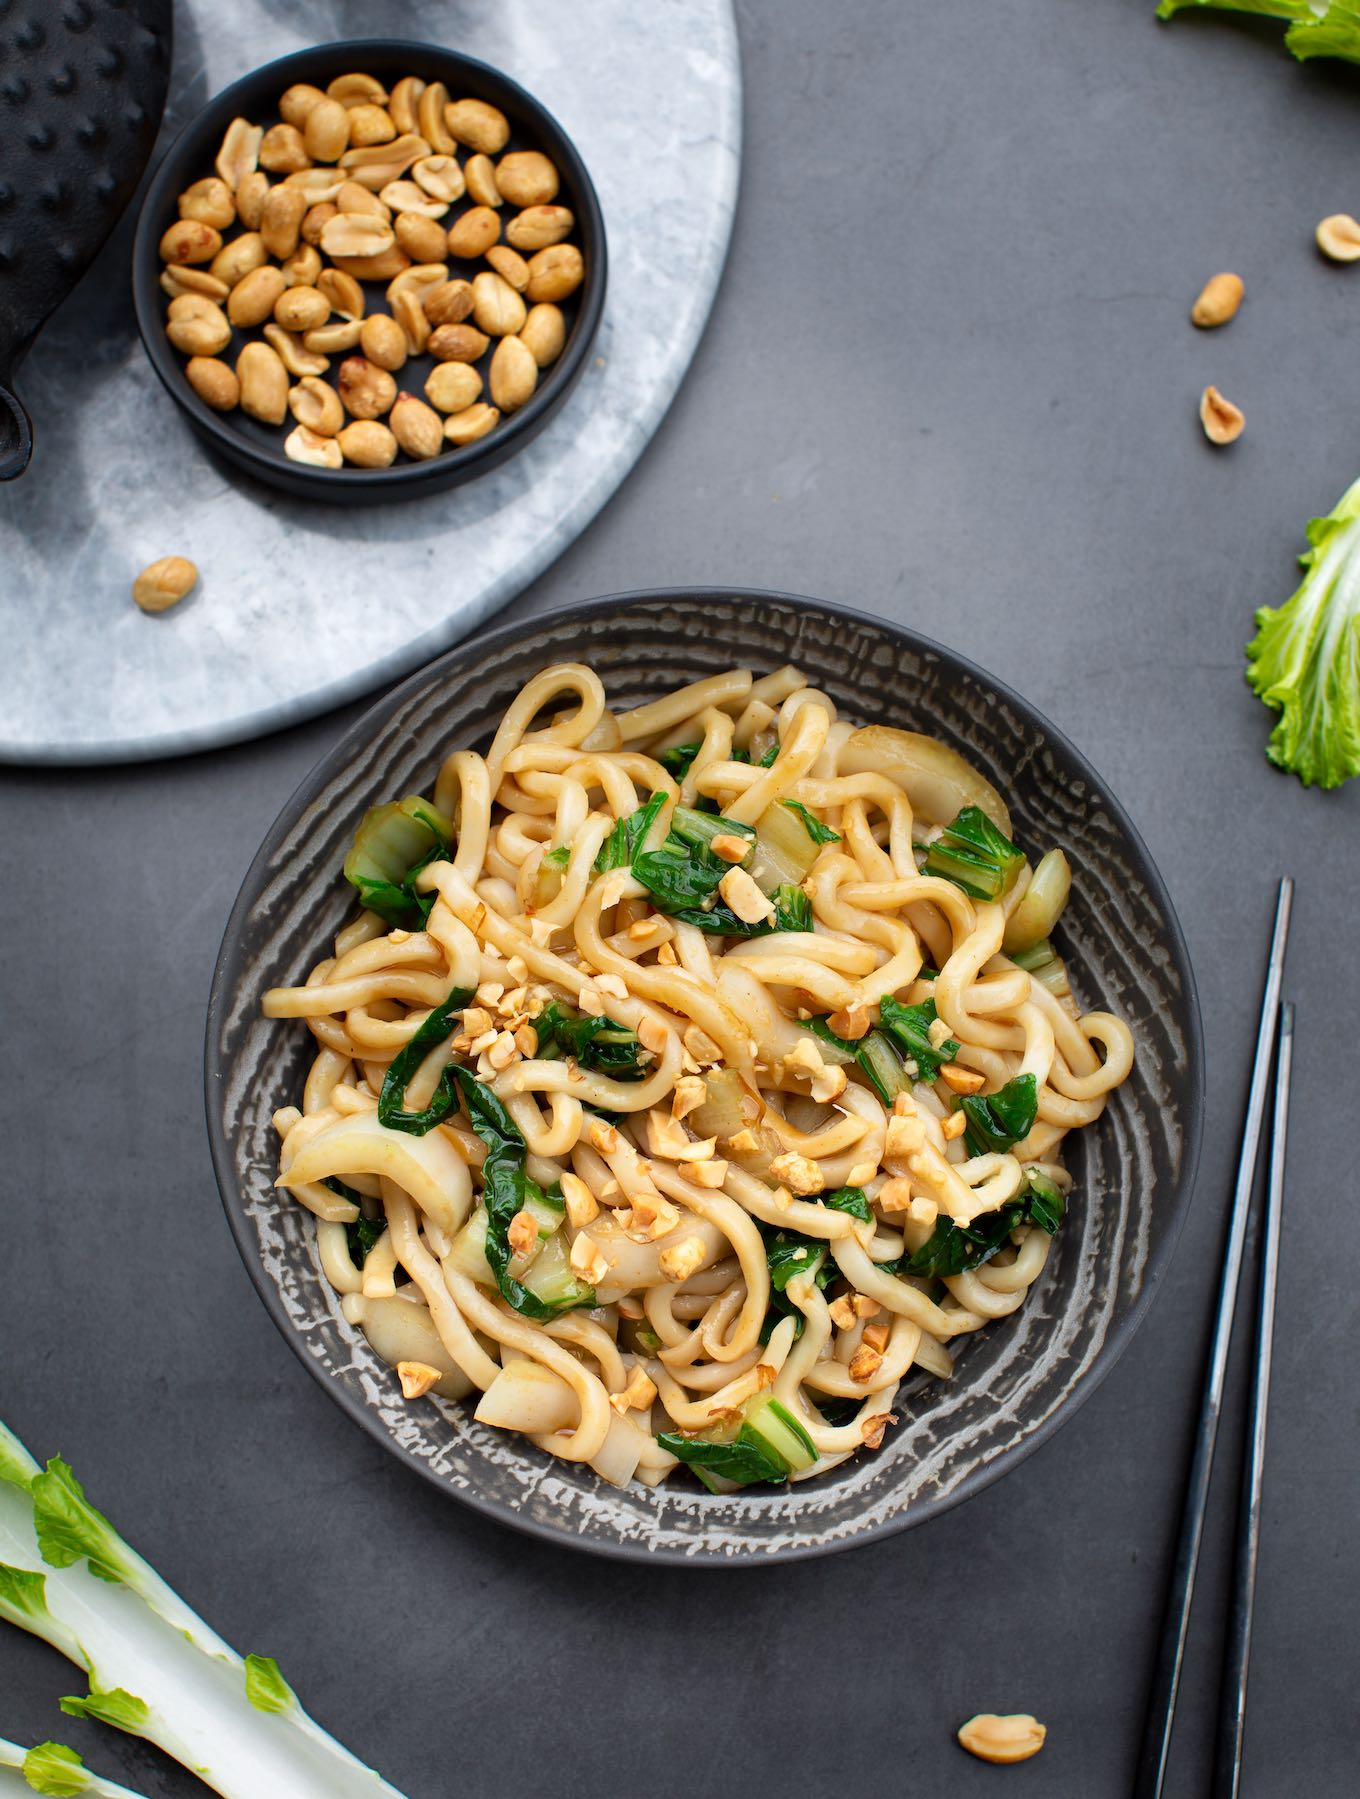 Udon noodles with bok choy